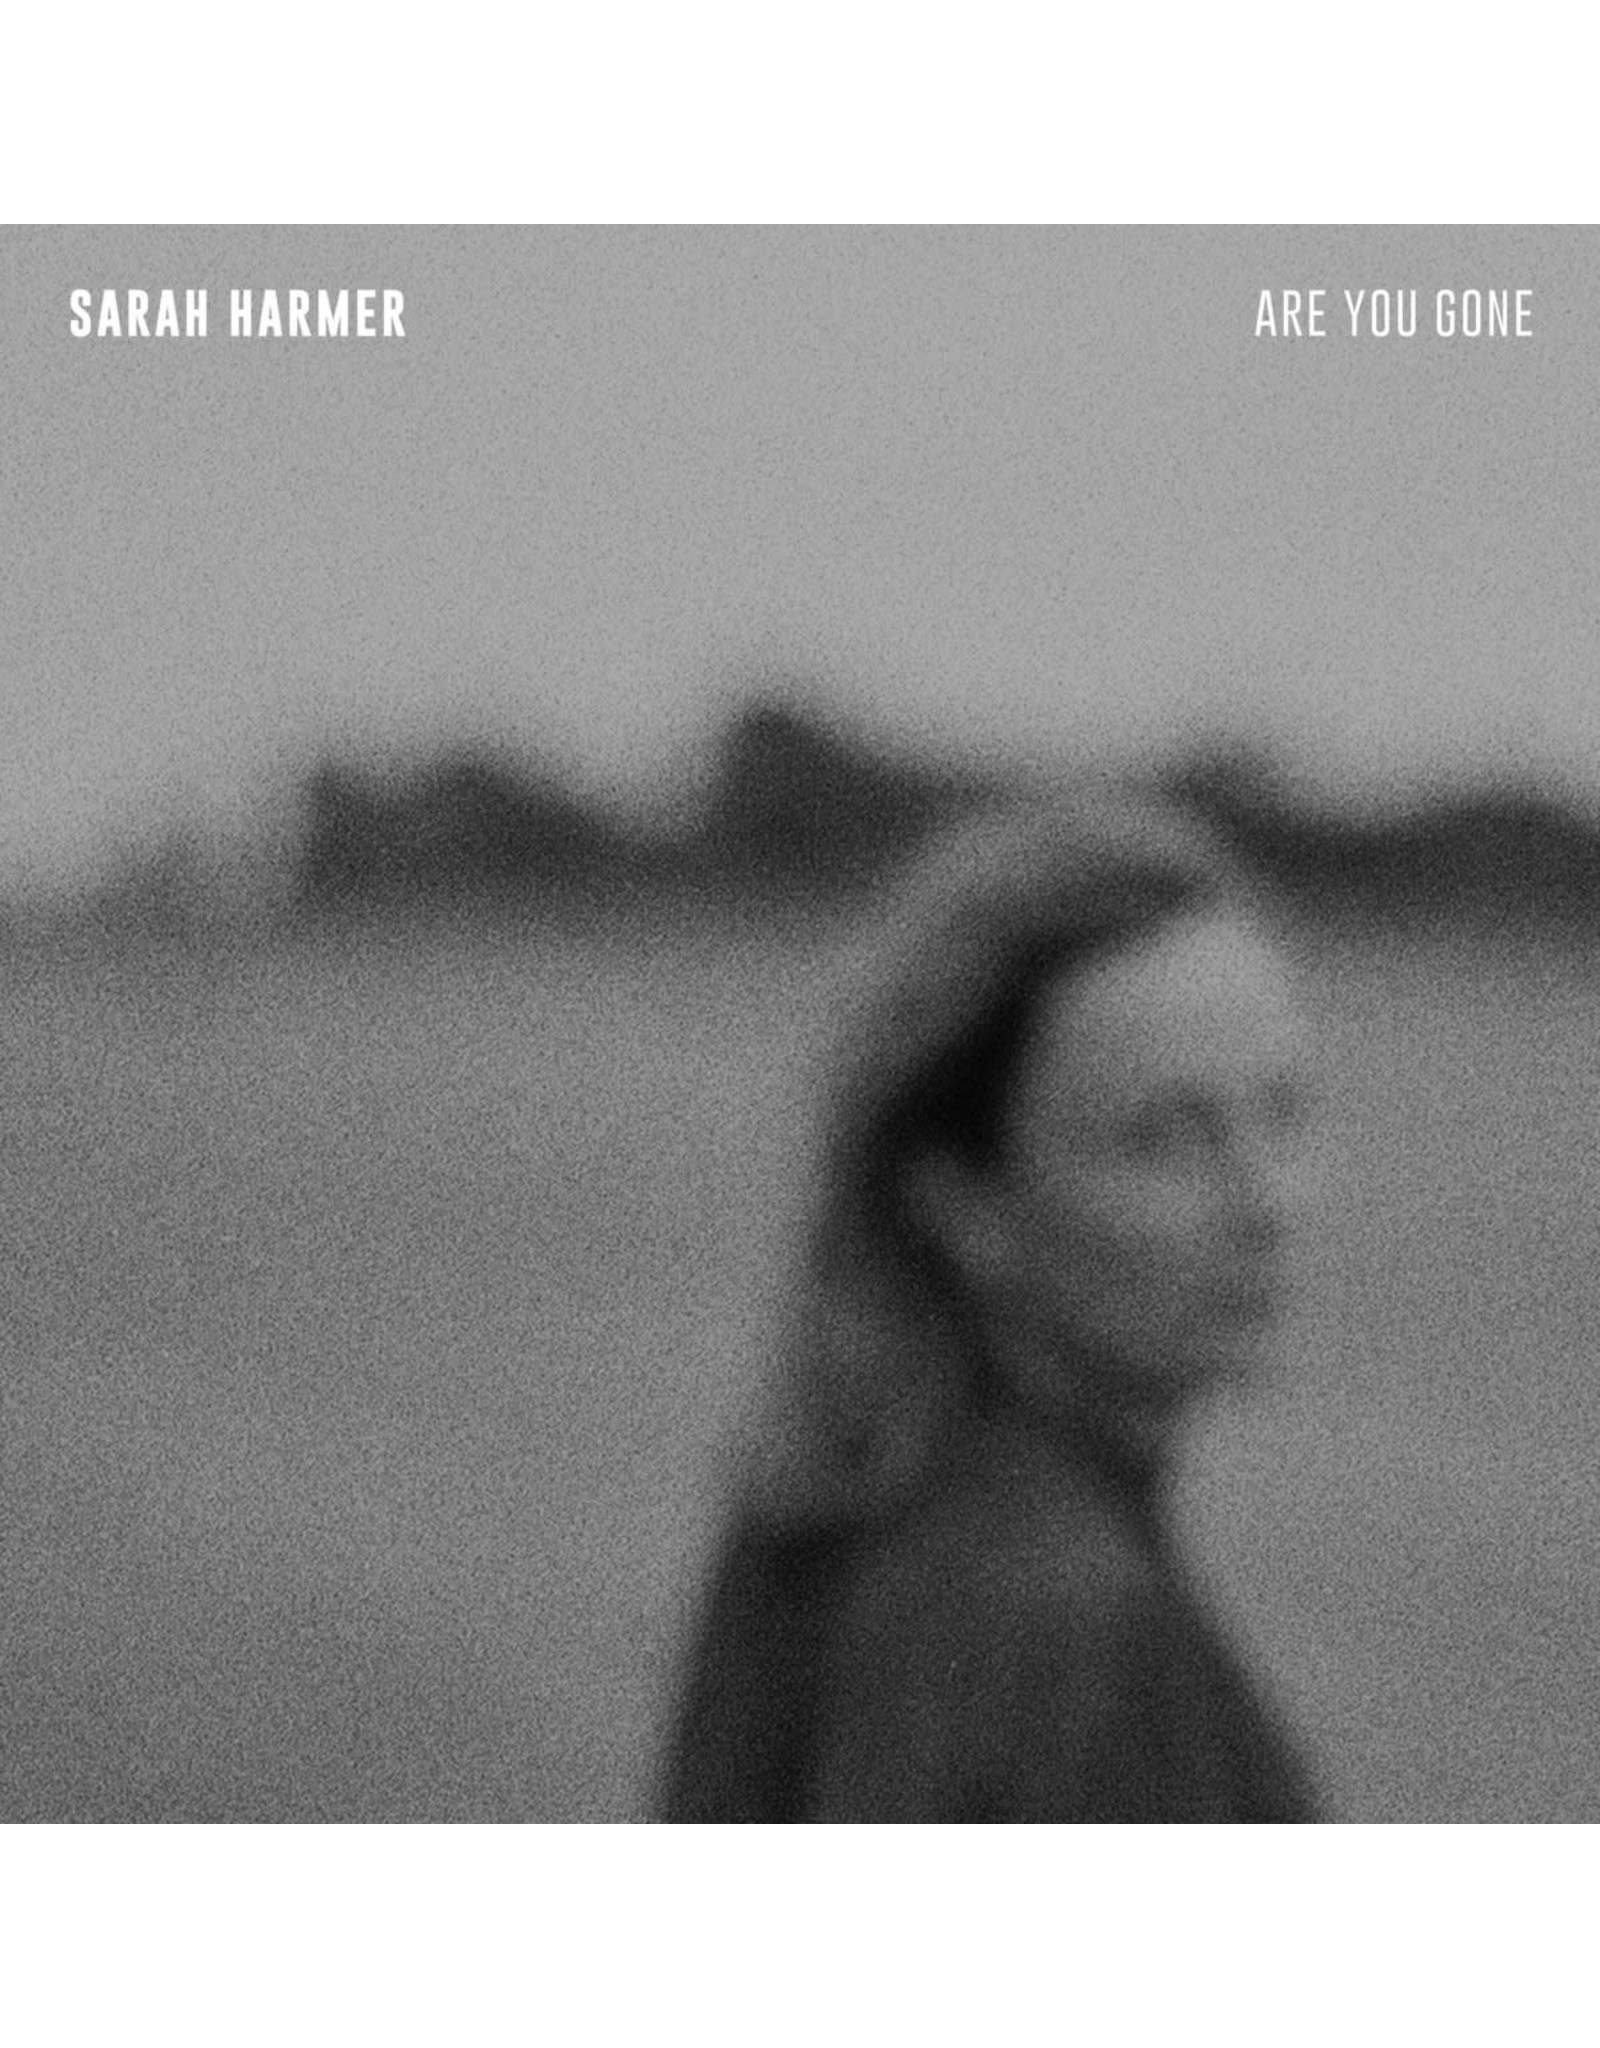 Harmer, Sarah - Are You Gone CD